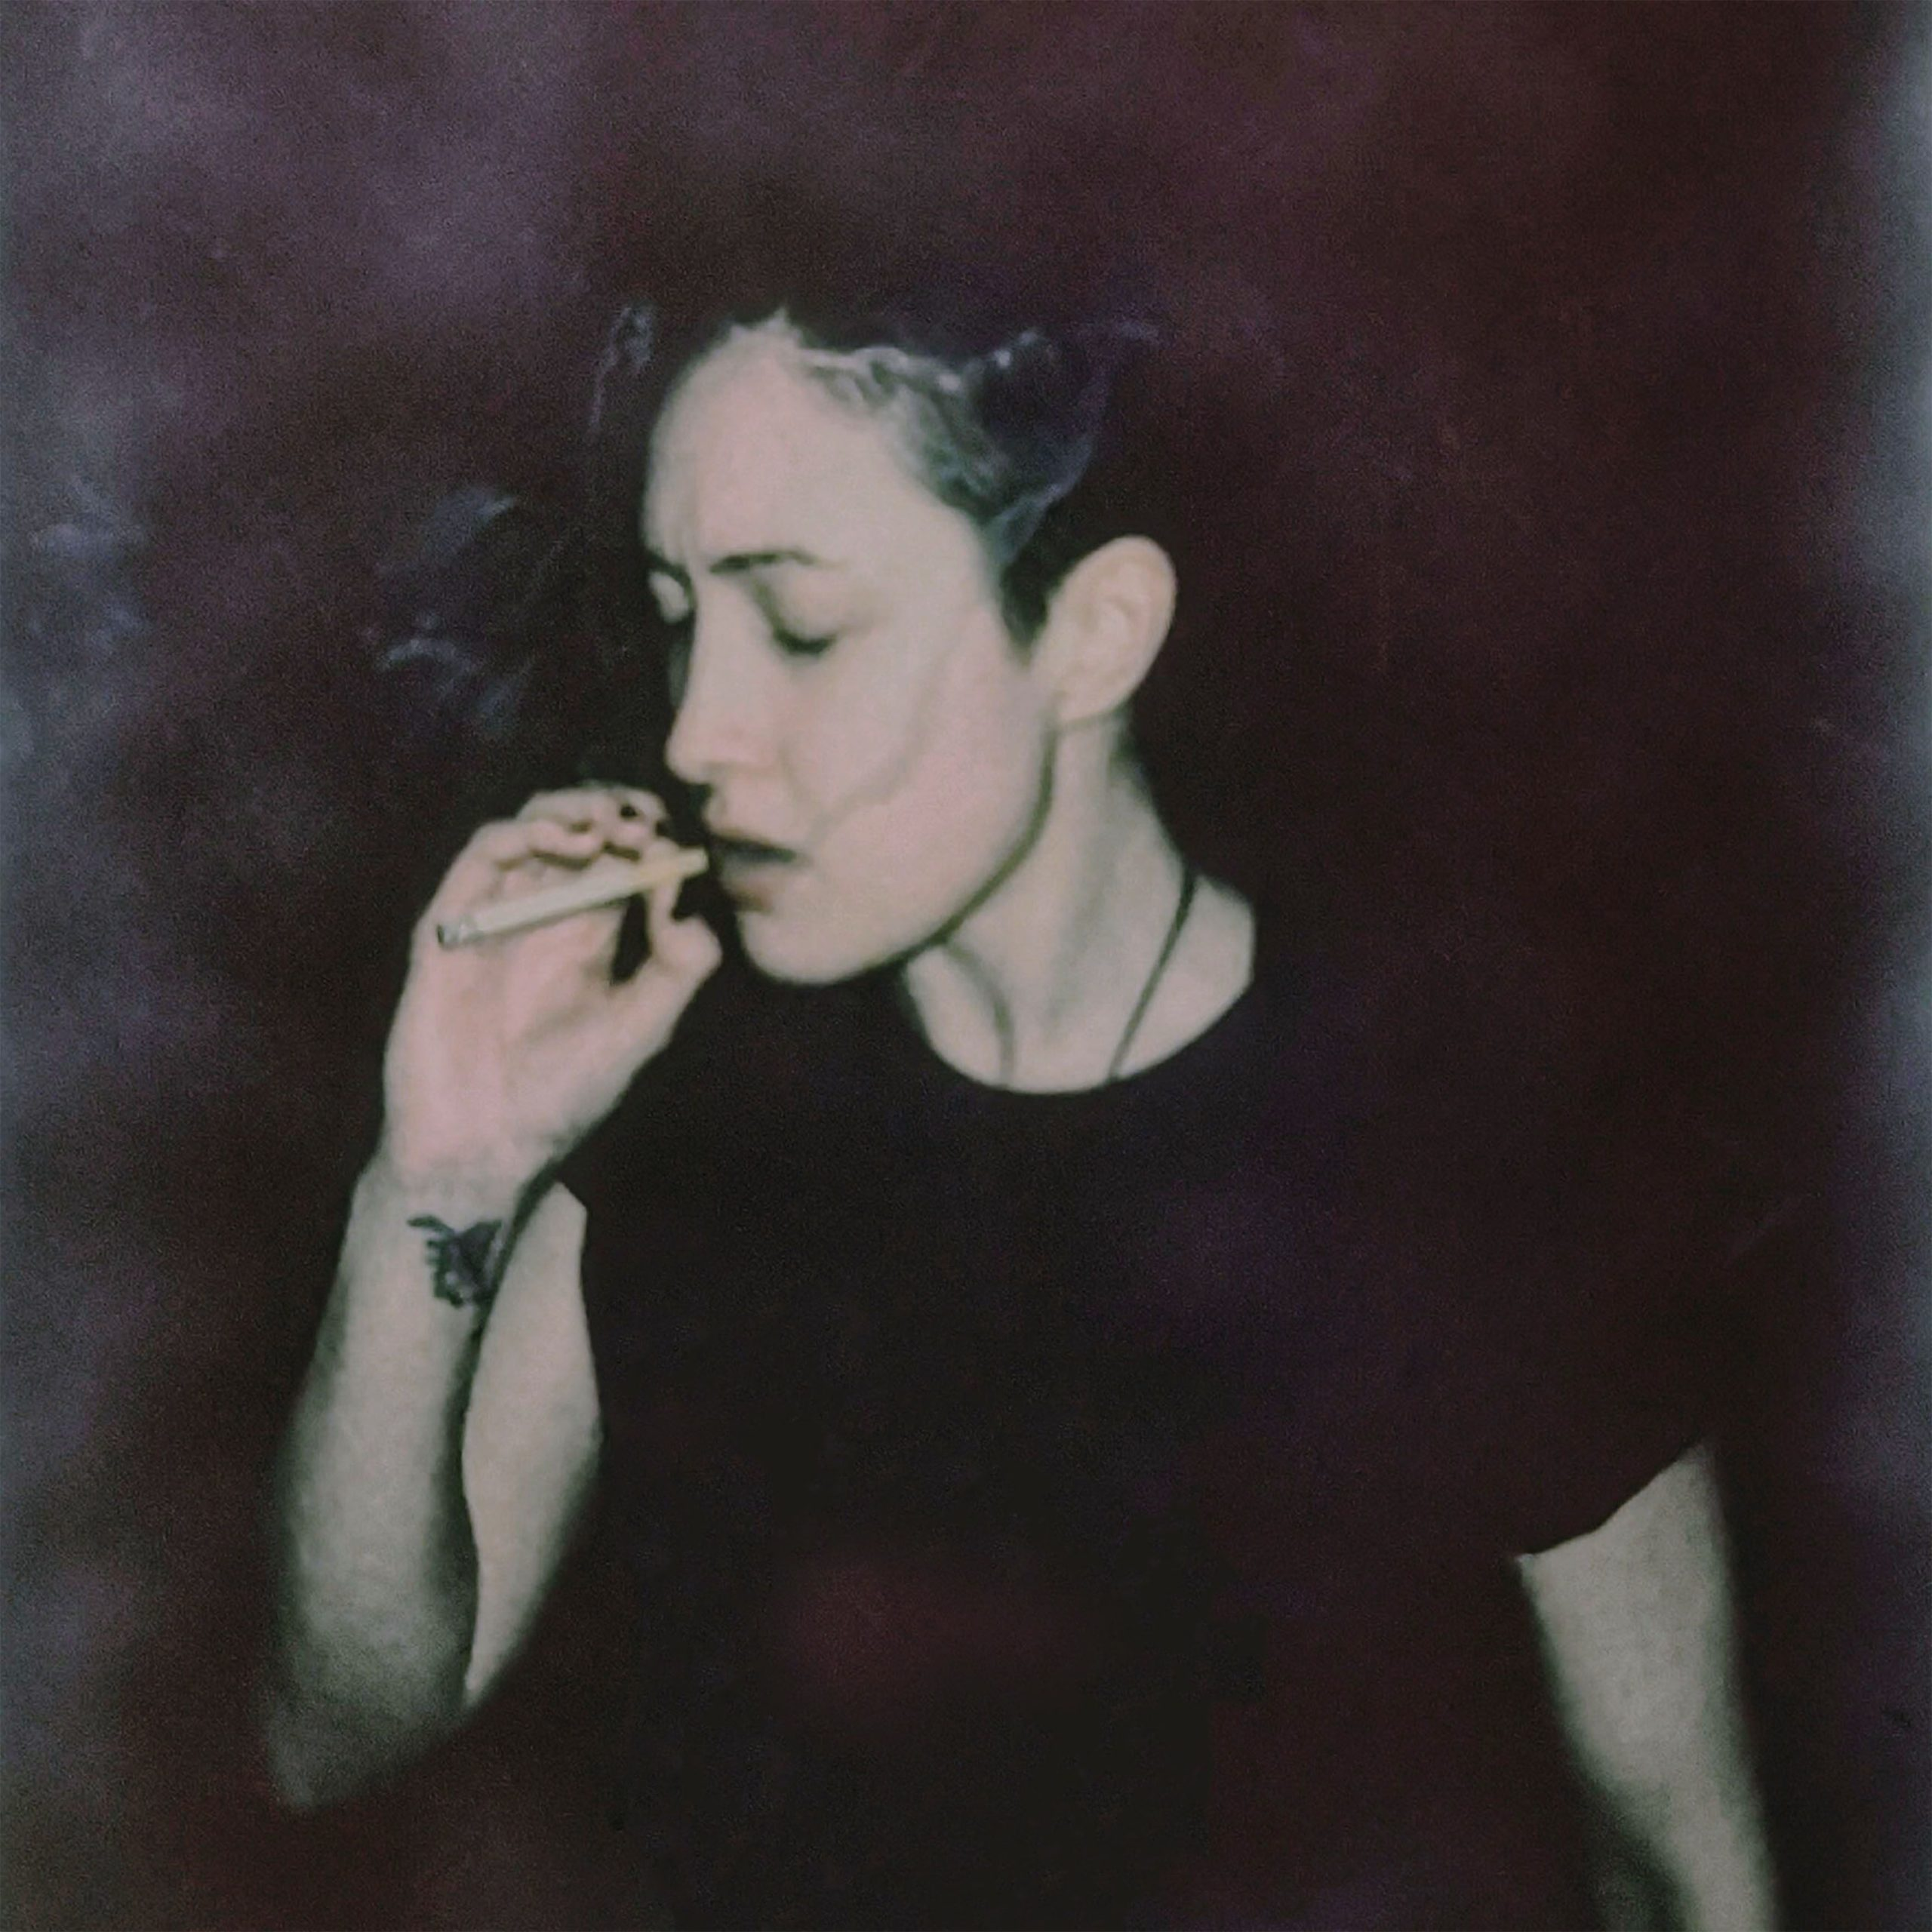 EXCLUSIVE: MNRØ – I'm Not Running to You Song Premiere